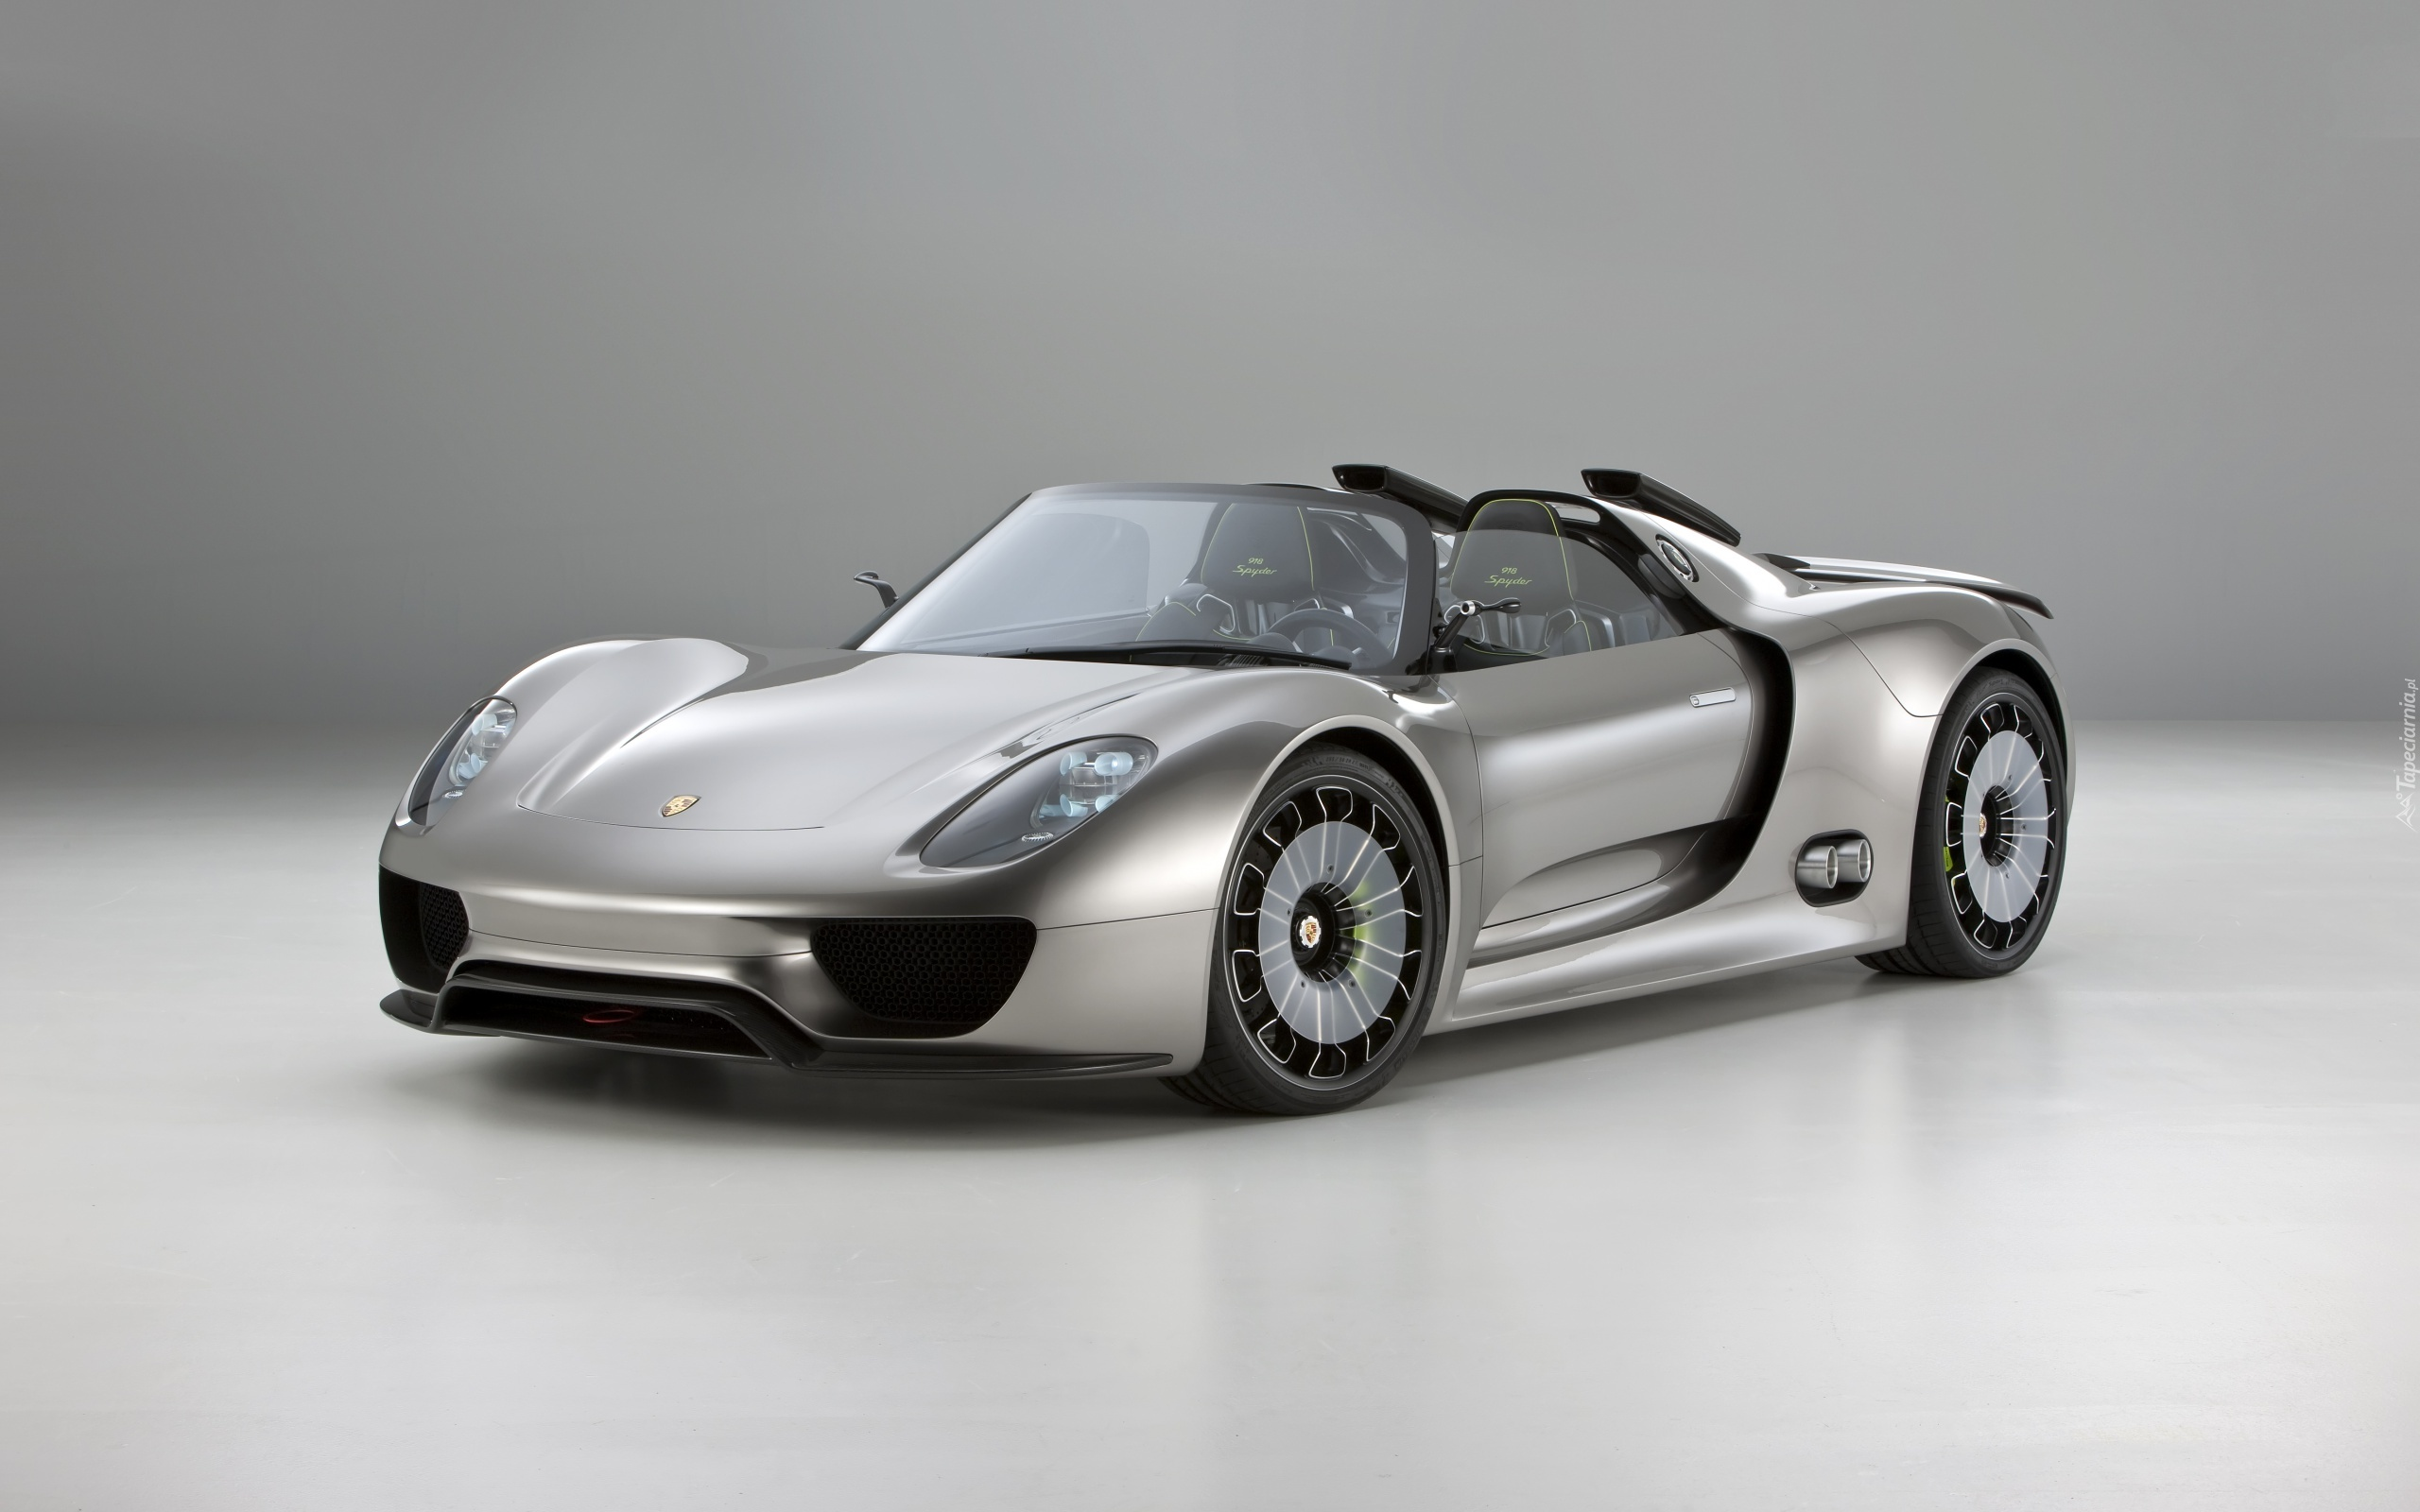 srebrne porsche 918 spyder concept. Black Bedroom Furniture Sets. Home Design Ideas